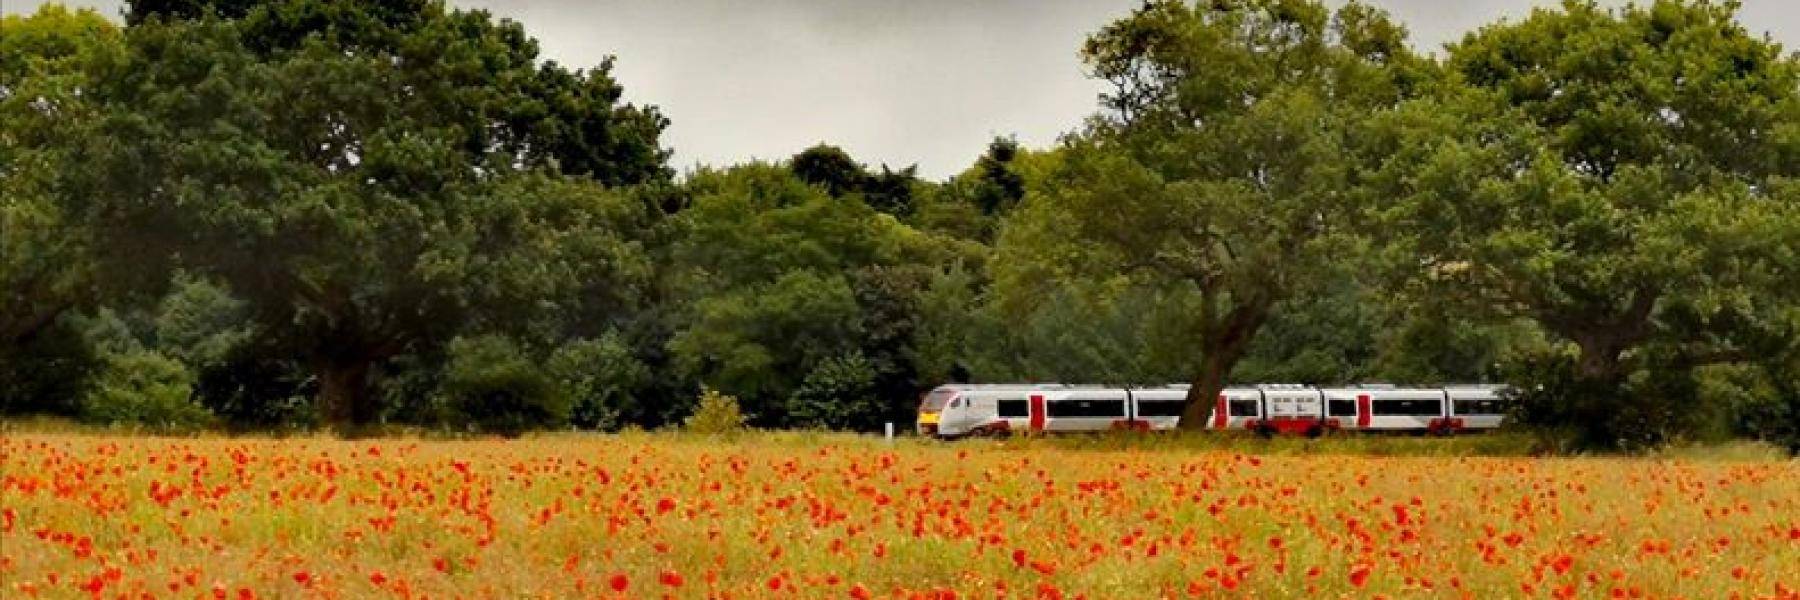 Greater Anglia train travelling through field